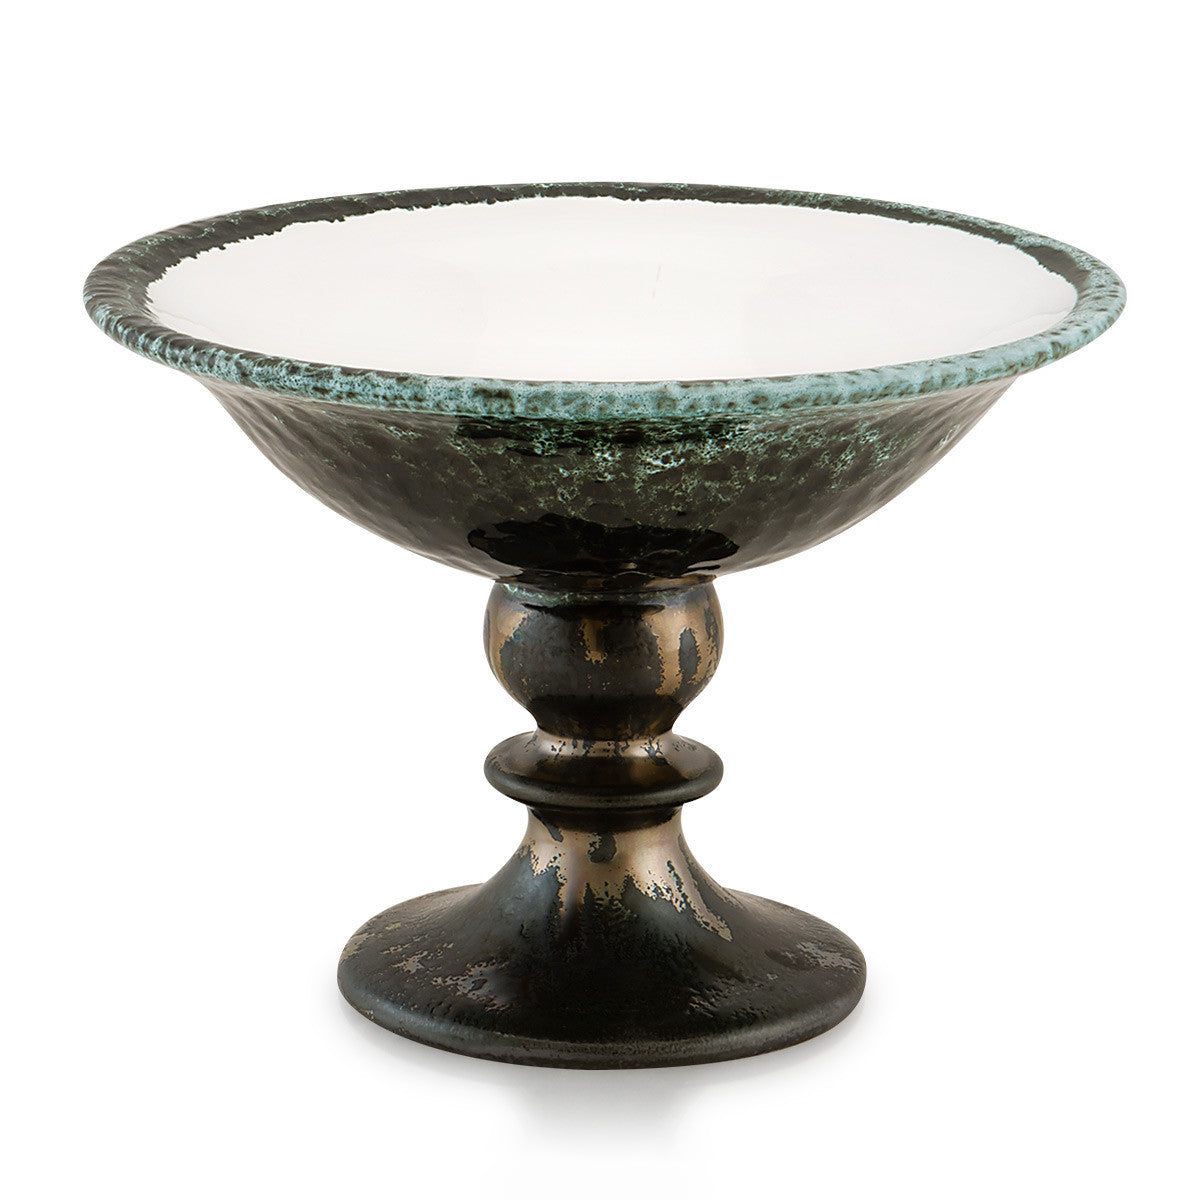 Ceramic pedestal bowl with reactive glaze